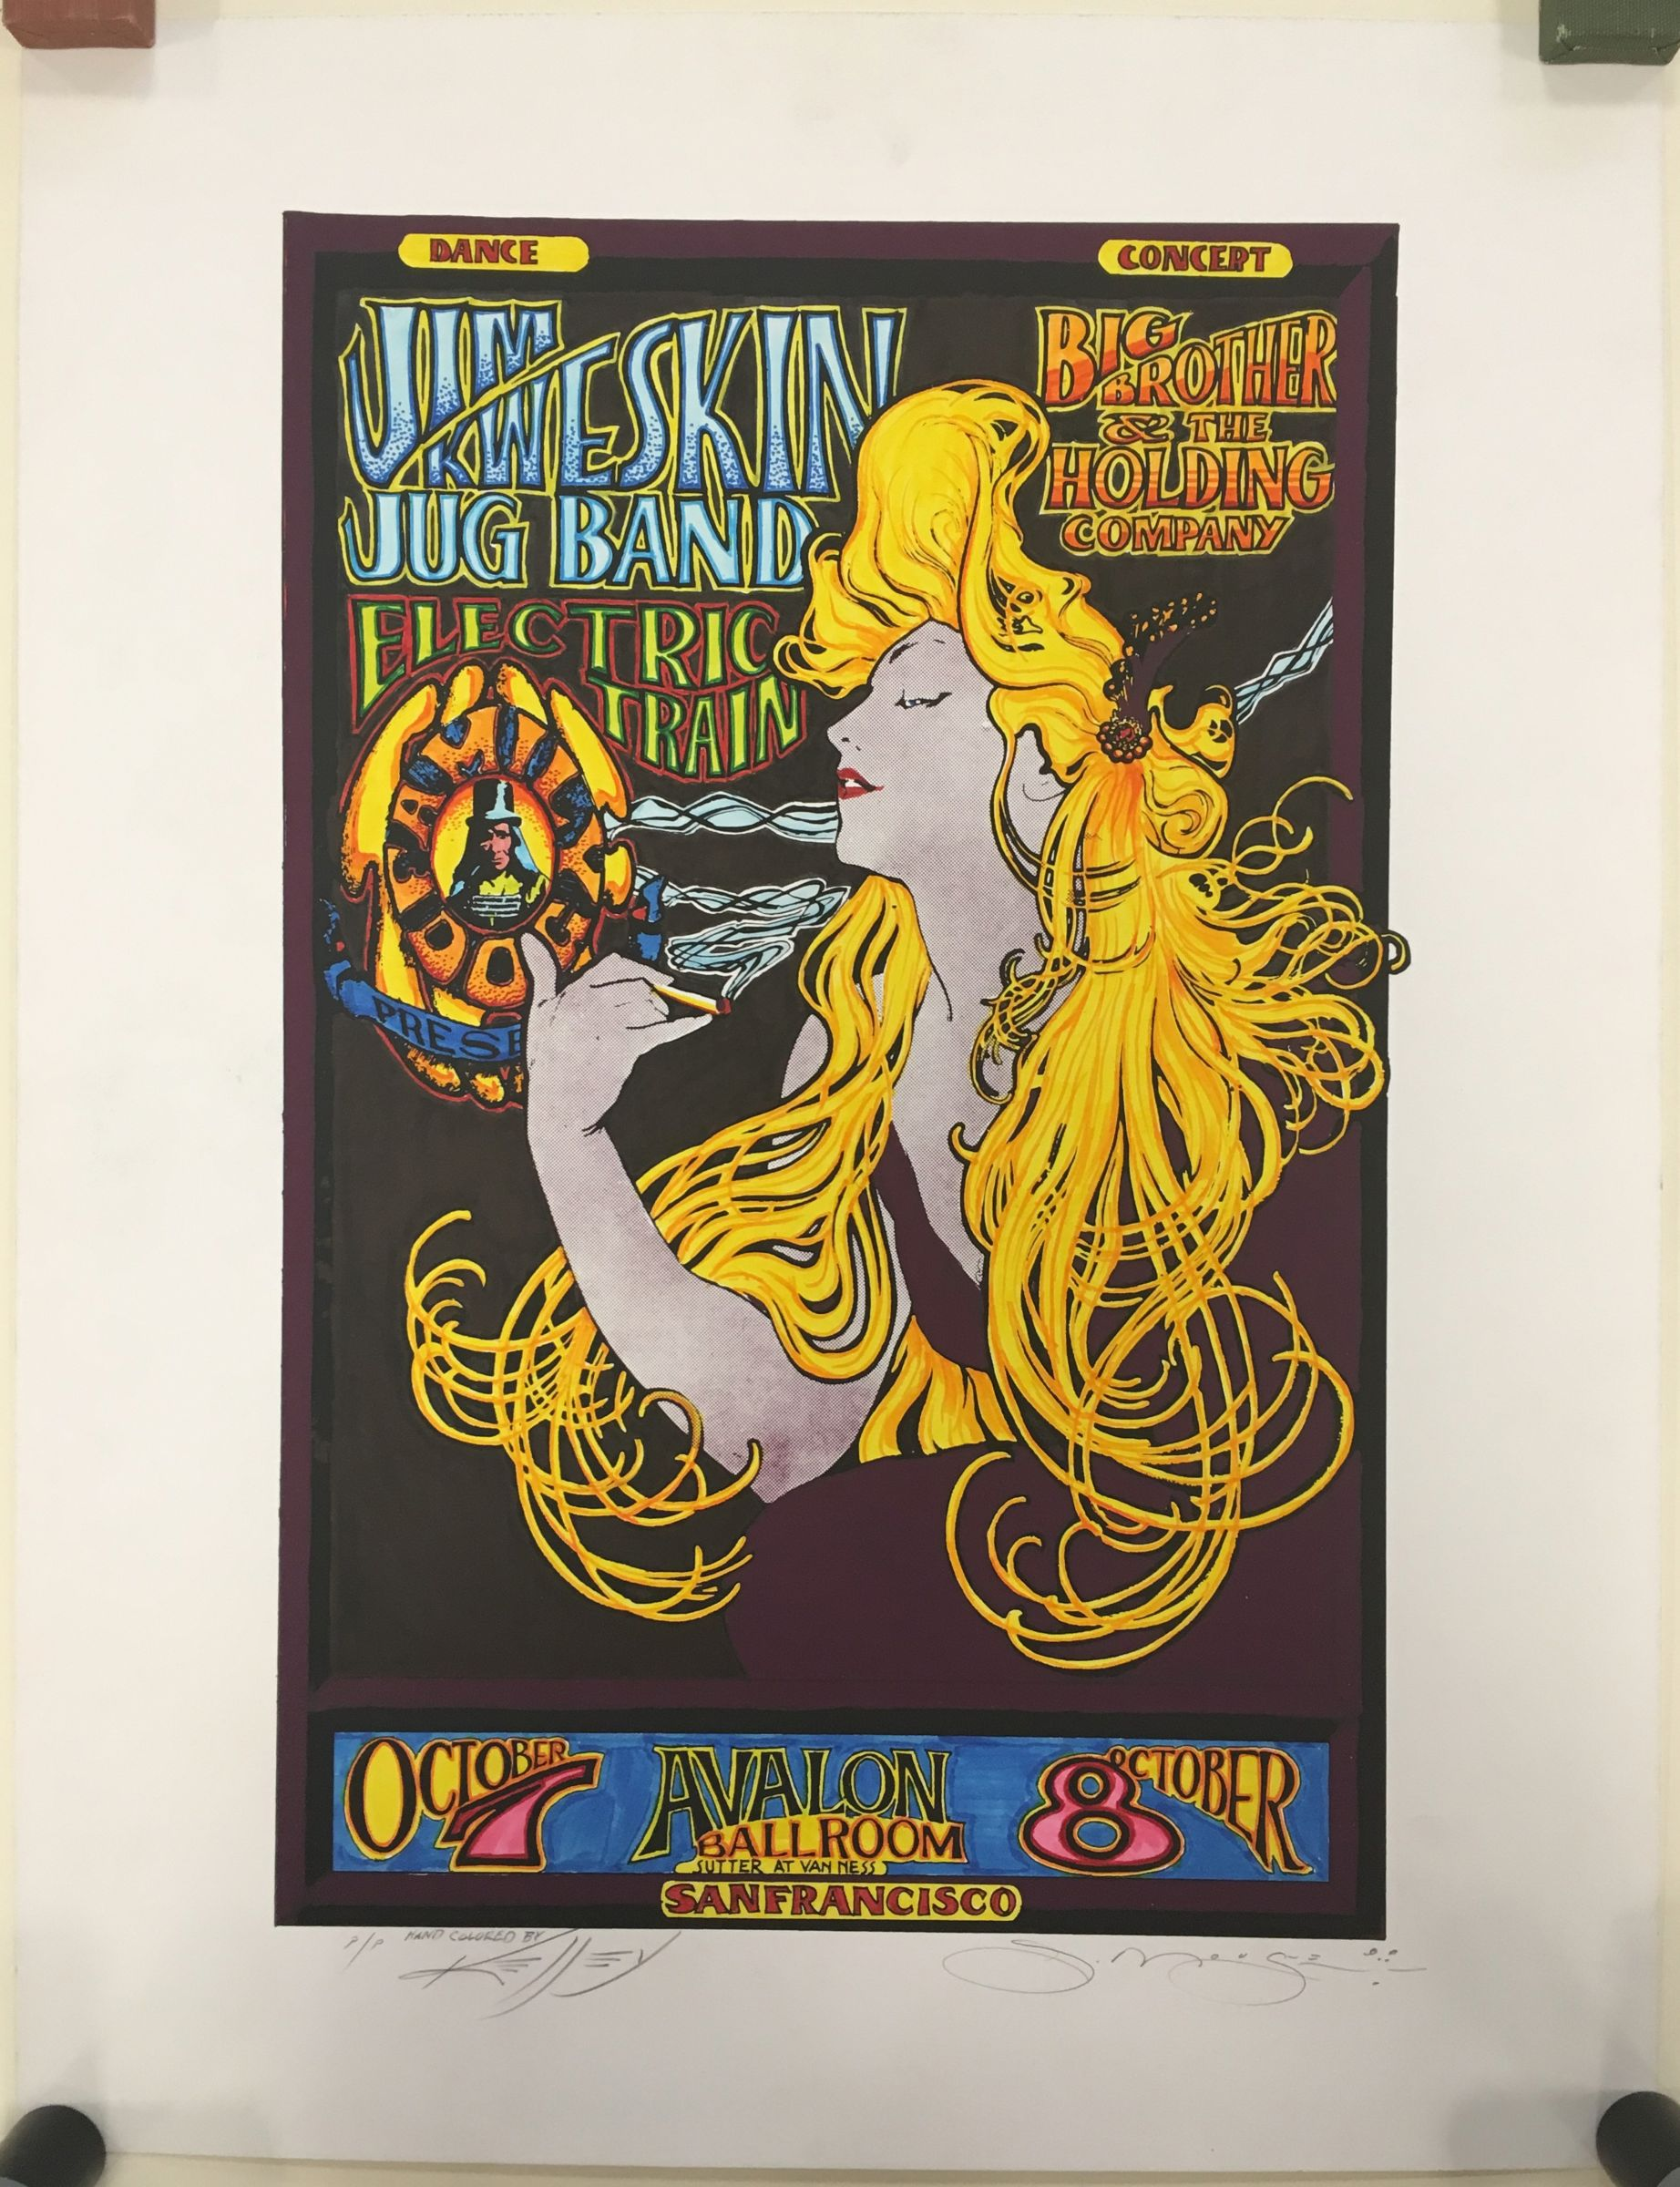 Family dog presents Jim Kweskin Jug Band, Electric Train, Big Brother and the Holding Company, Avalon ballroom. Design by Mouse Studios, hand colored by Kelley : lithograph poster, undated